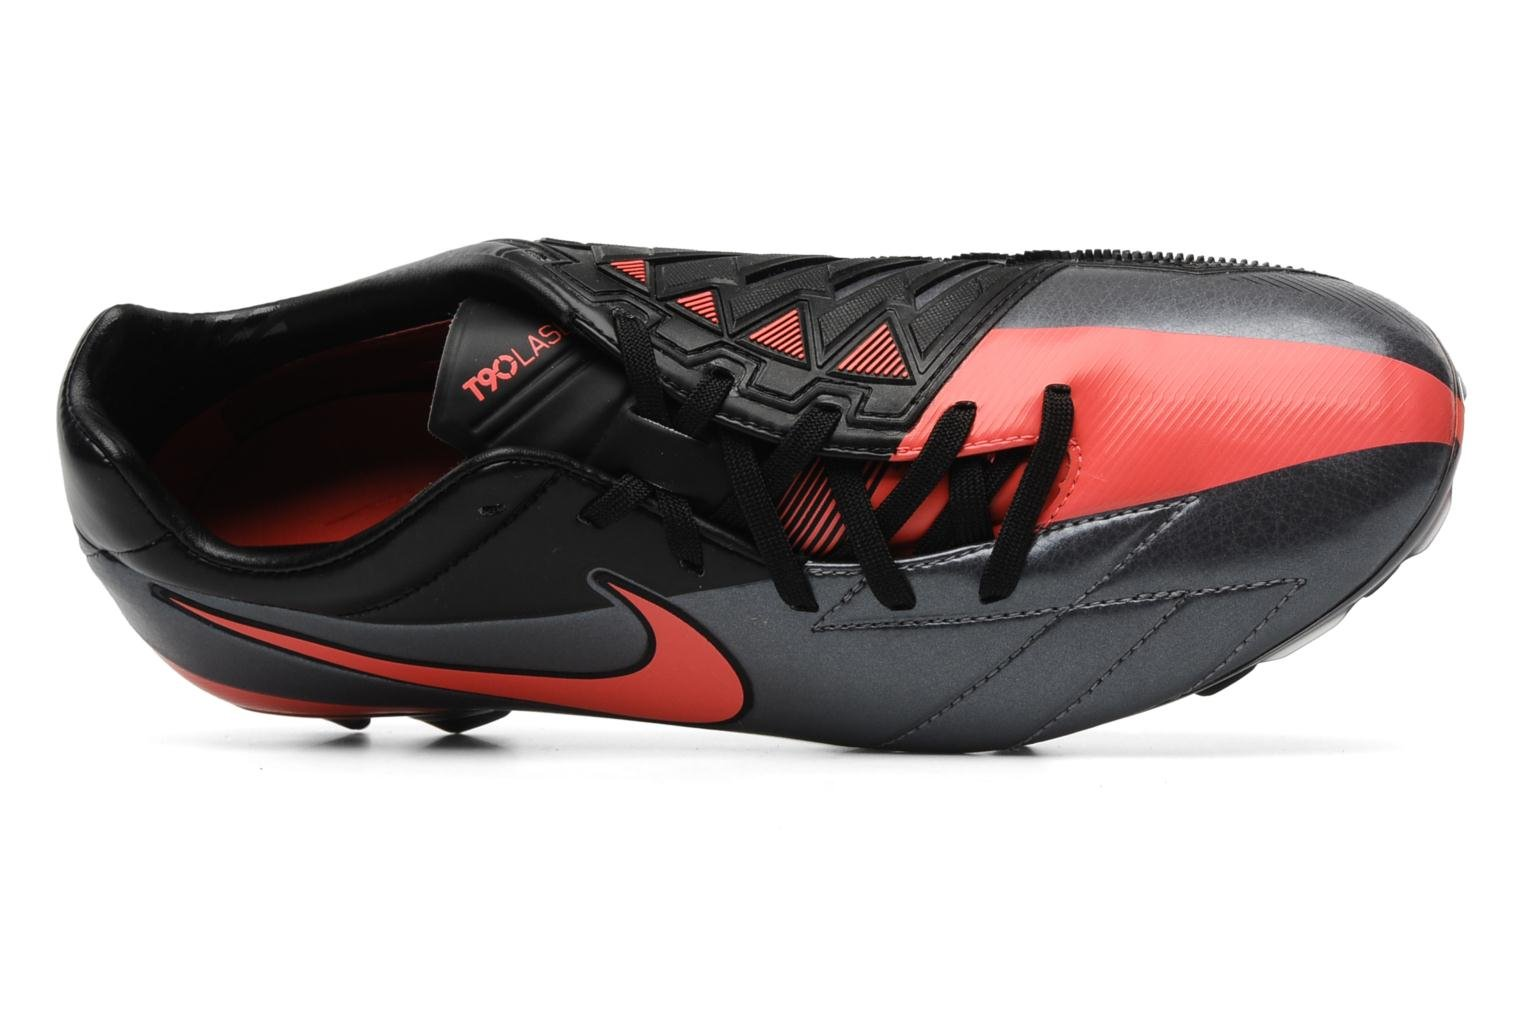 T90 Laser IV FG Dark Grey Solar Red Black